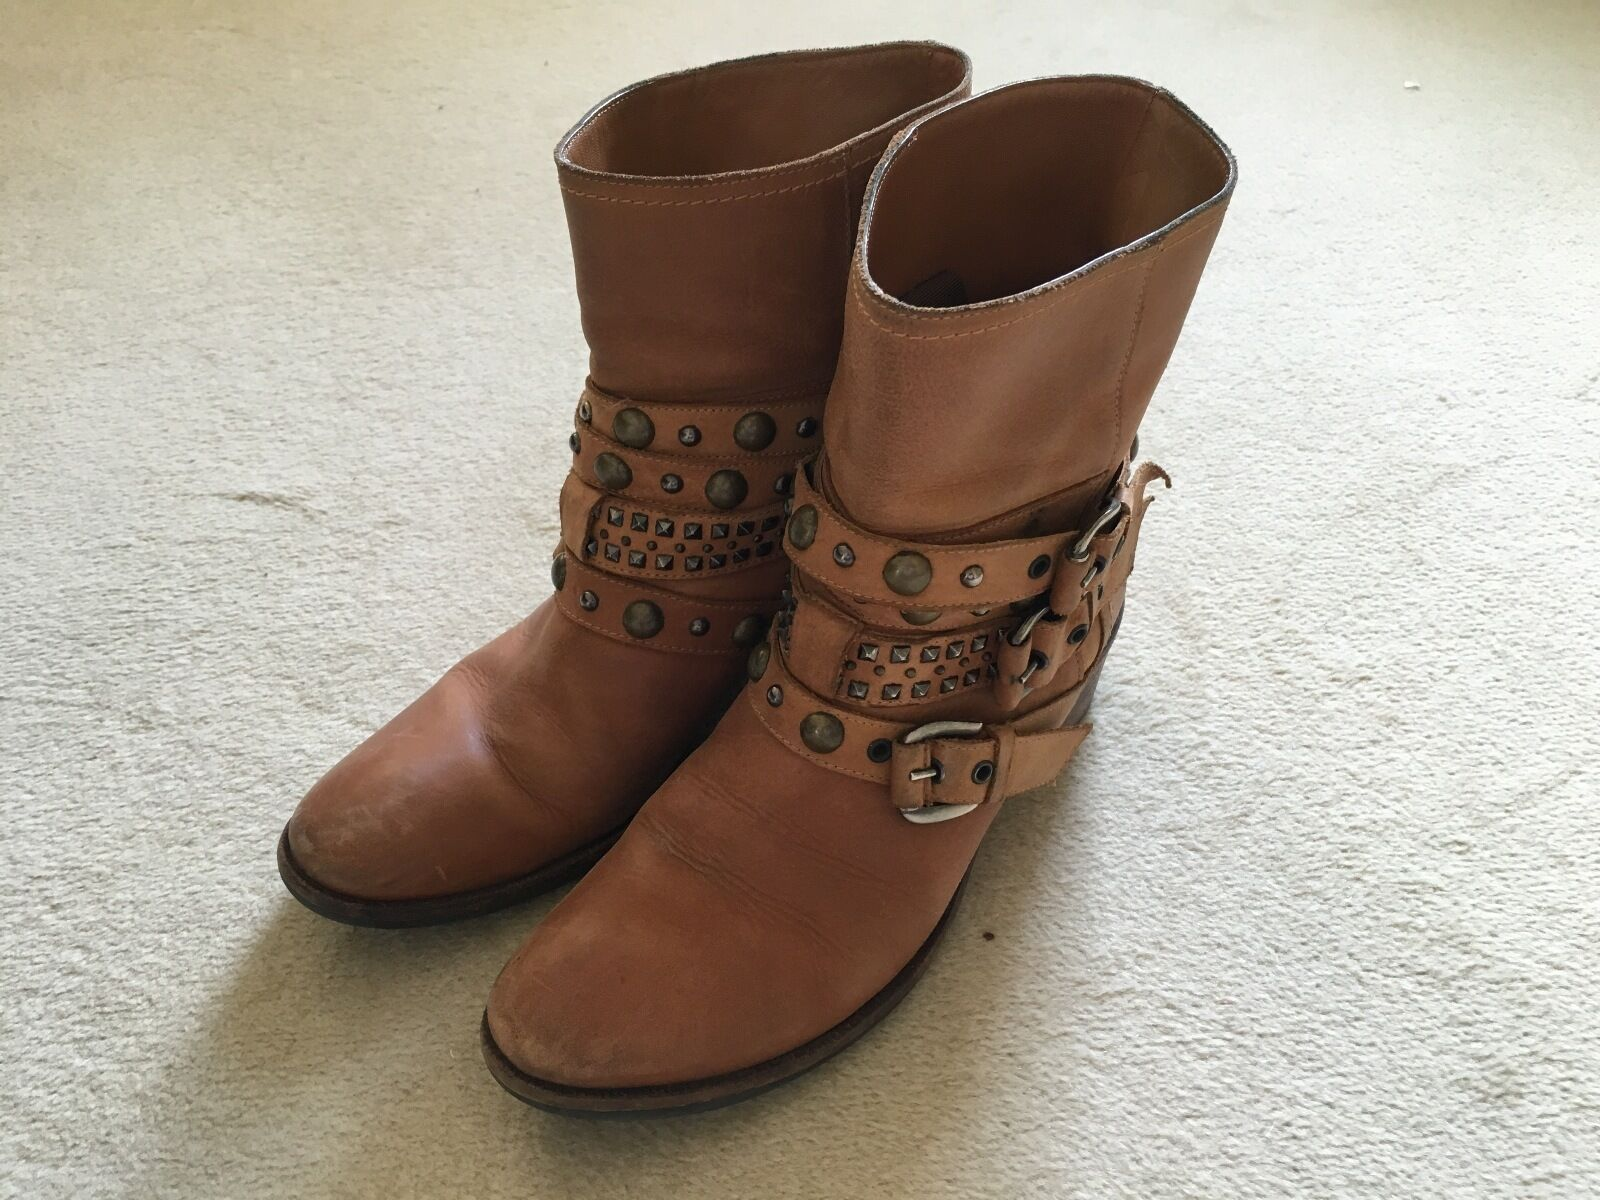 Grandes zapatos con descuento Russell & Bromley Tan Leather Rockafella Ankle Boots, size 5